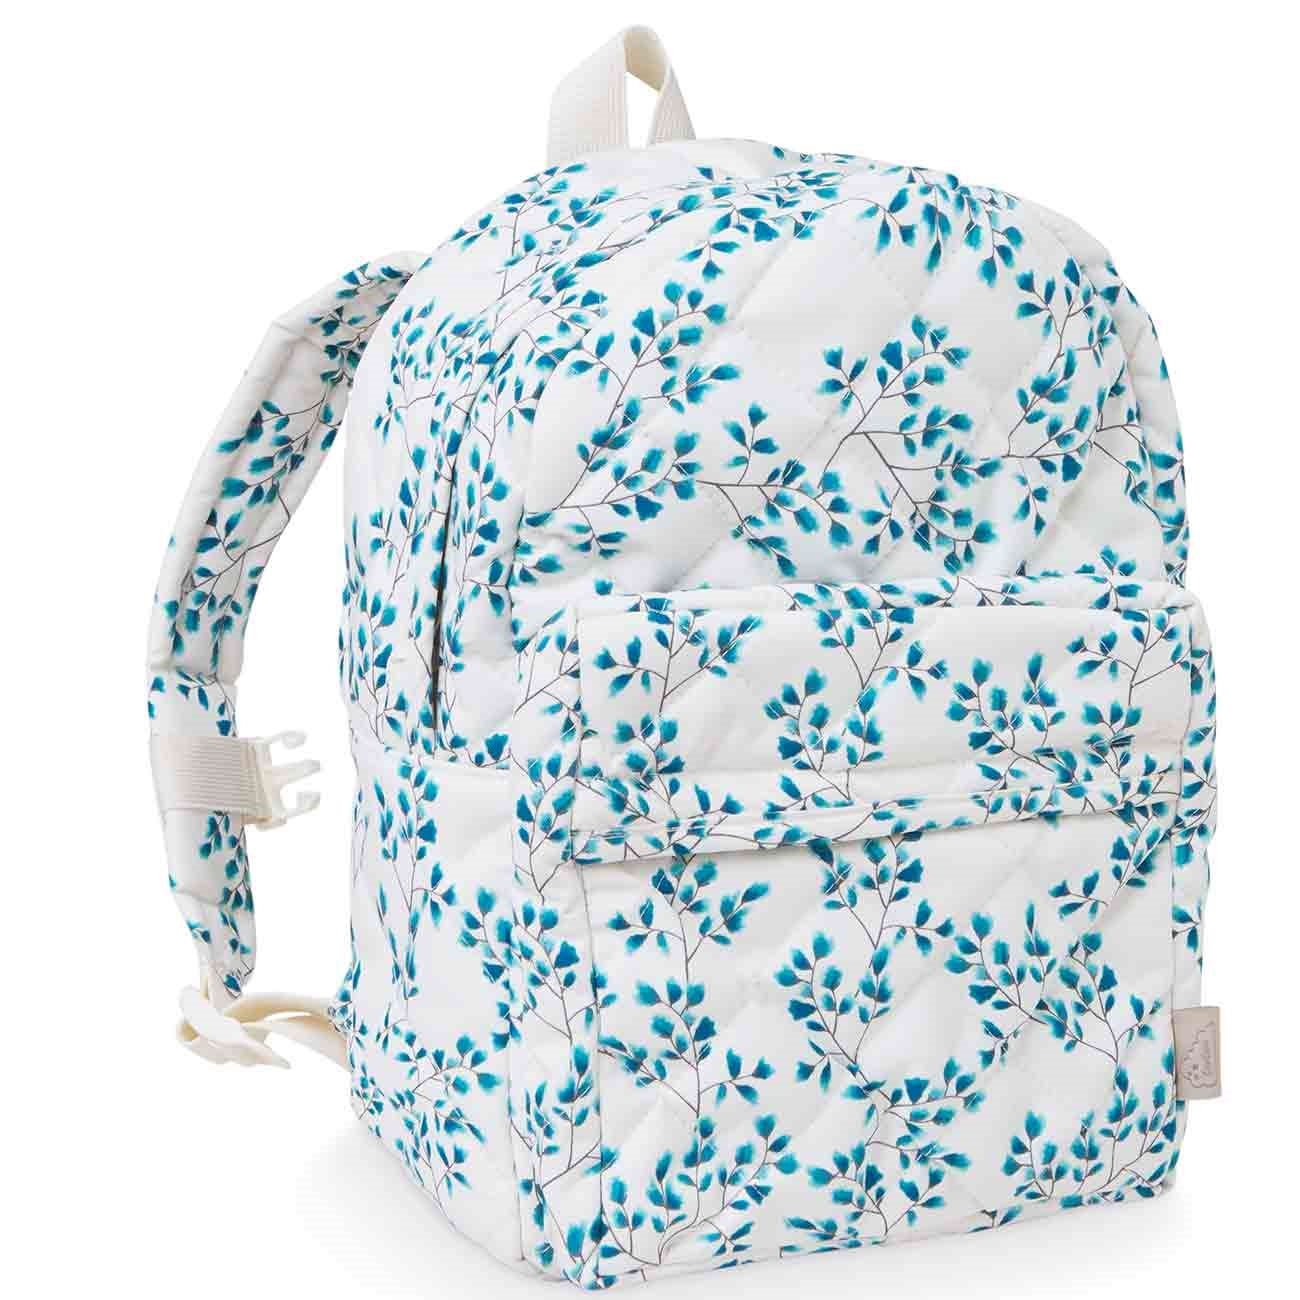 camcam-backpack-rygsaek-fiori-1